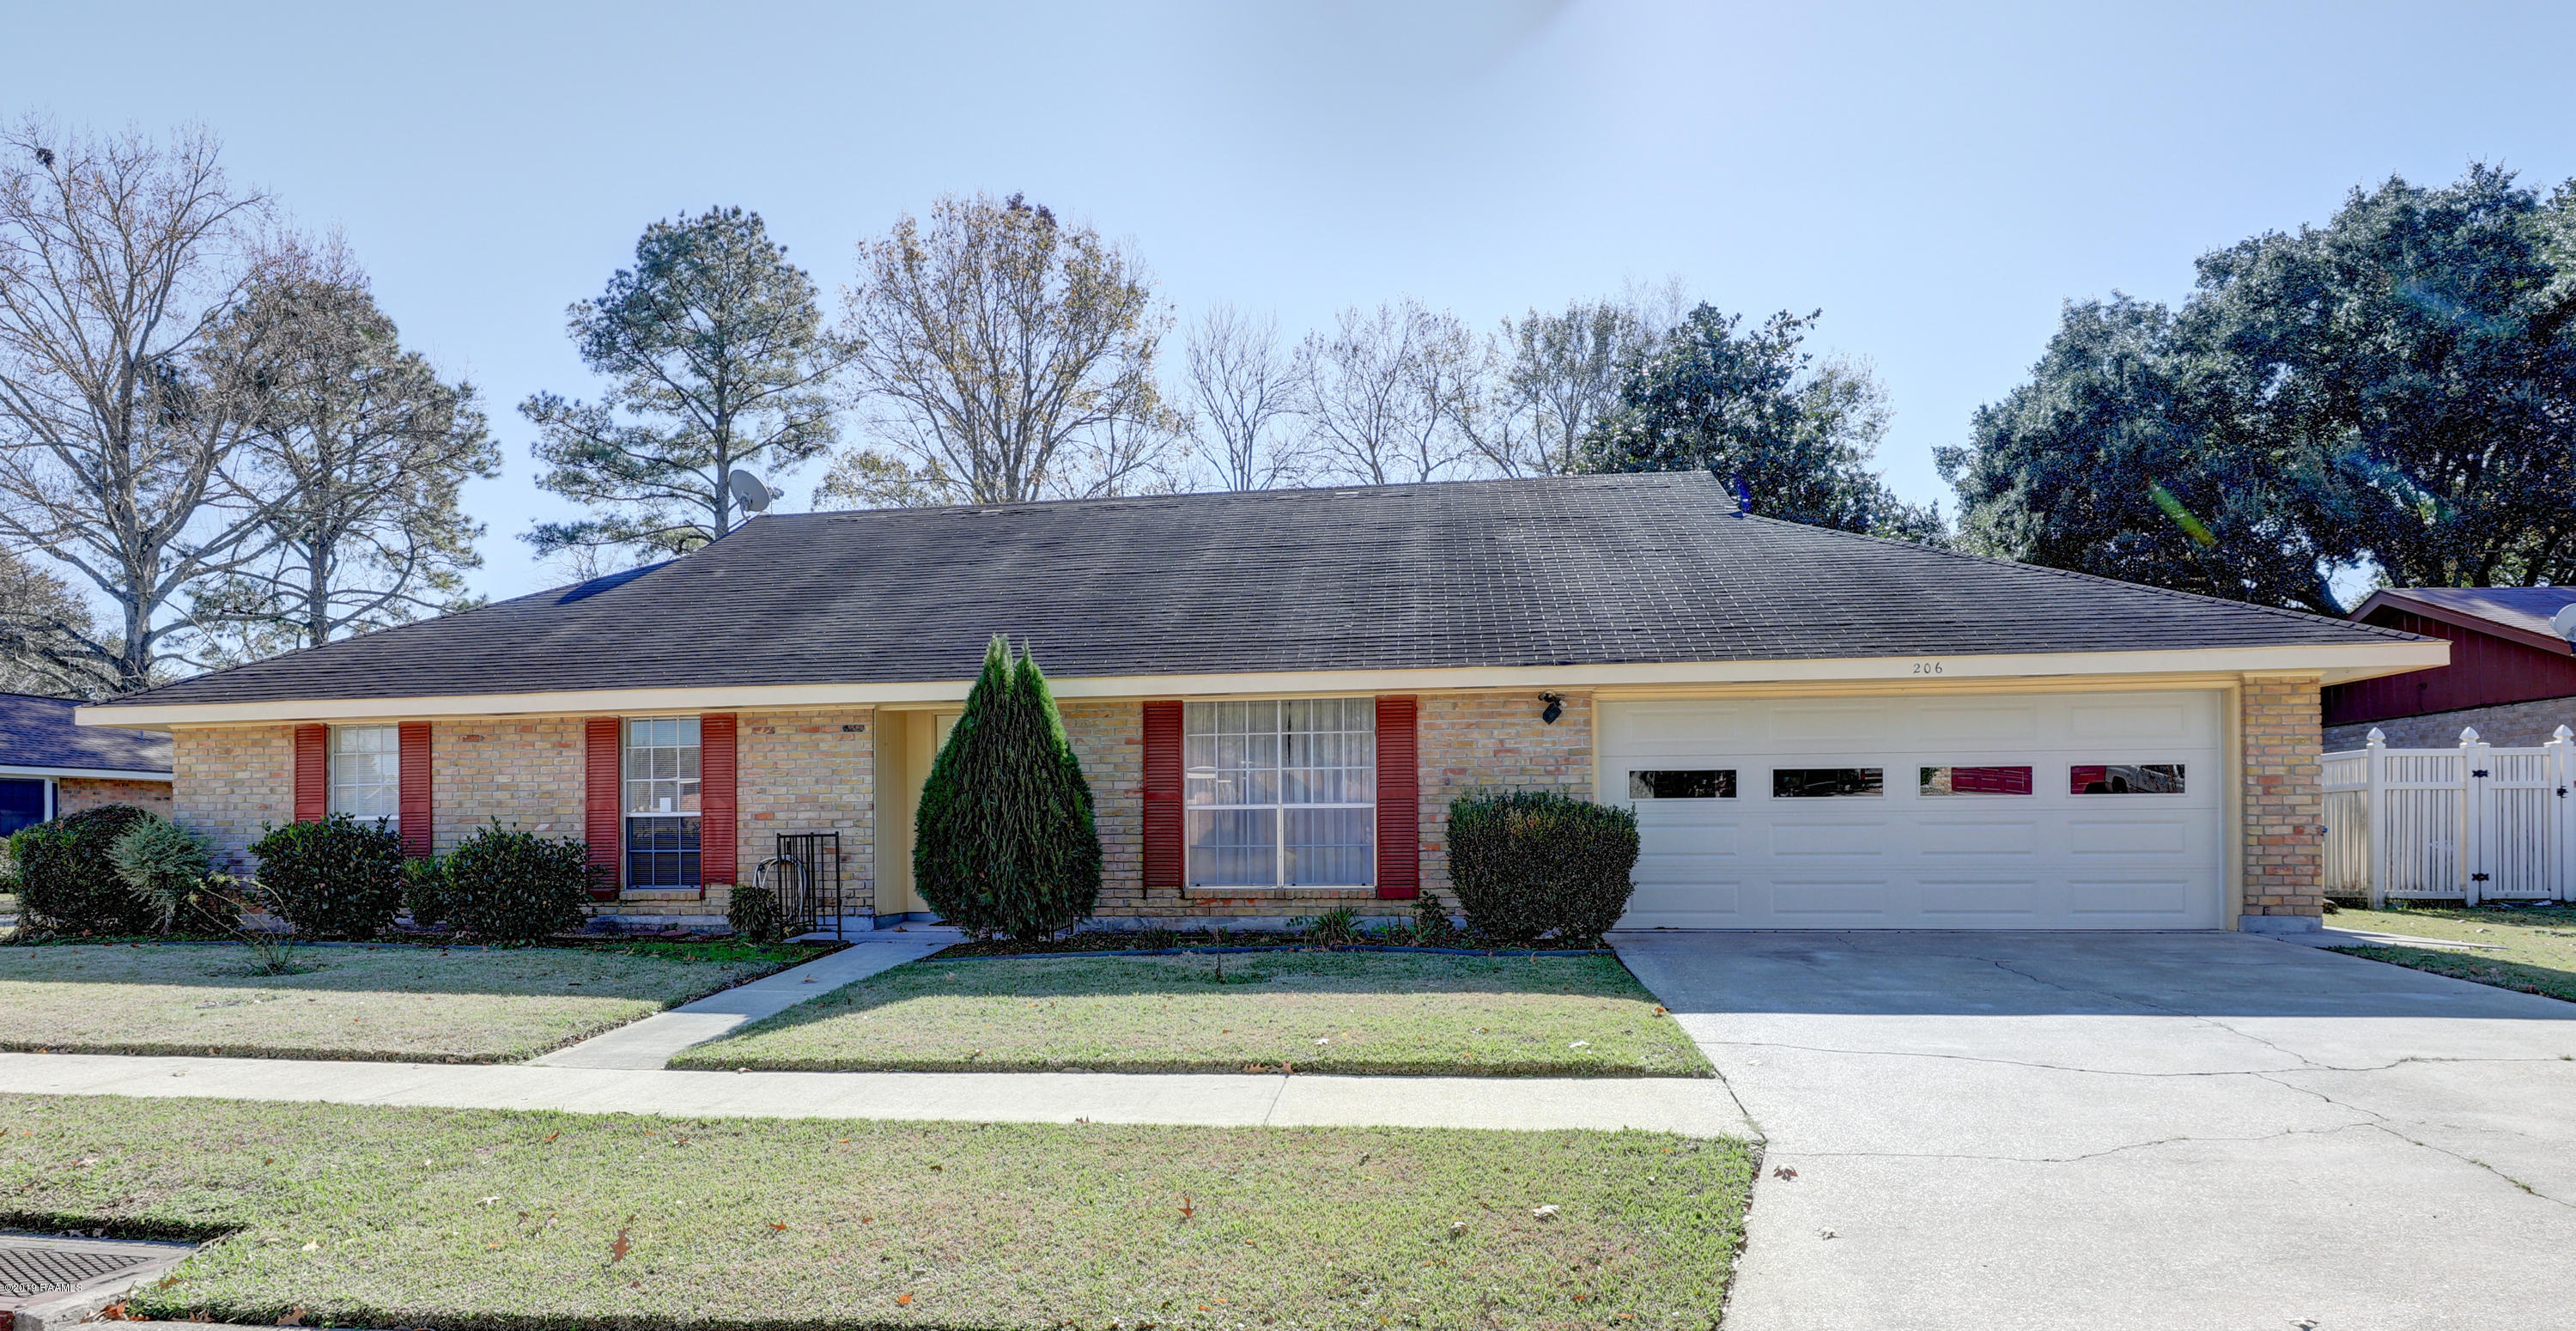 206 Persimmon Place, Lafayette, LA 70507 Photo #3